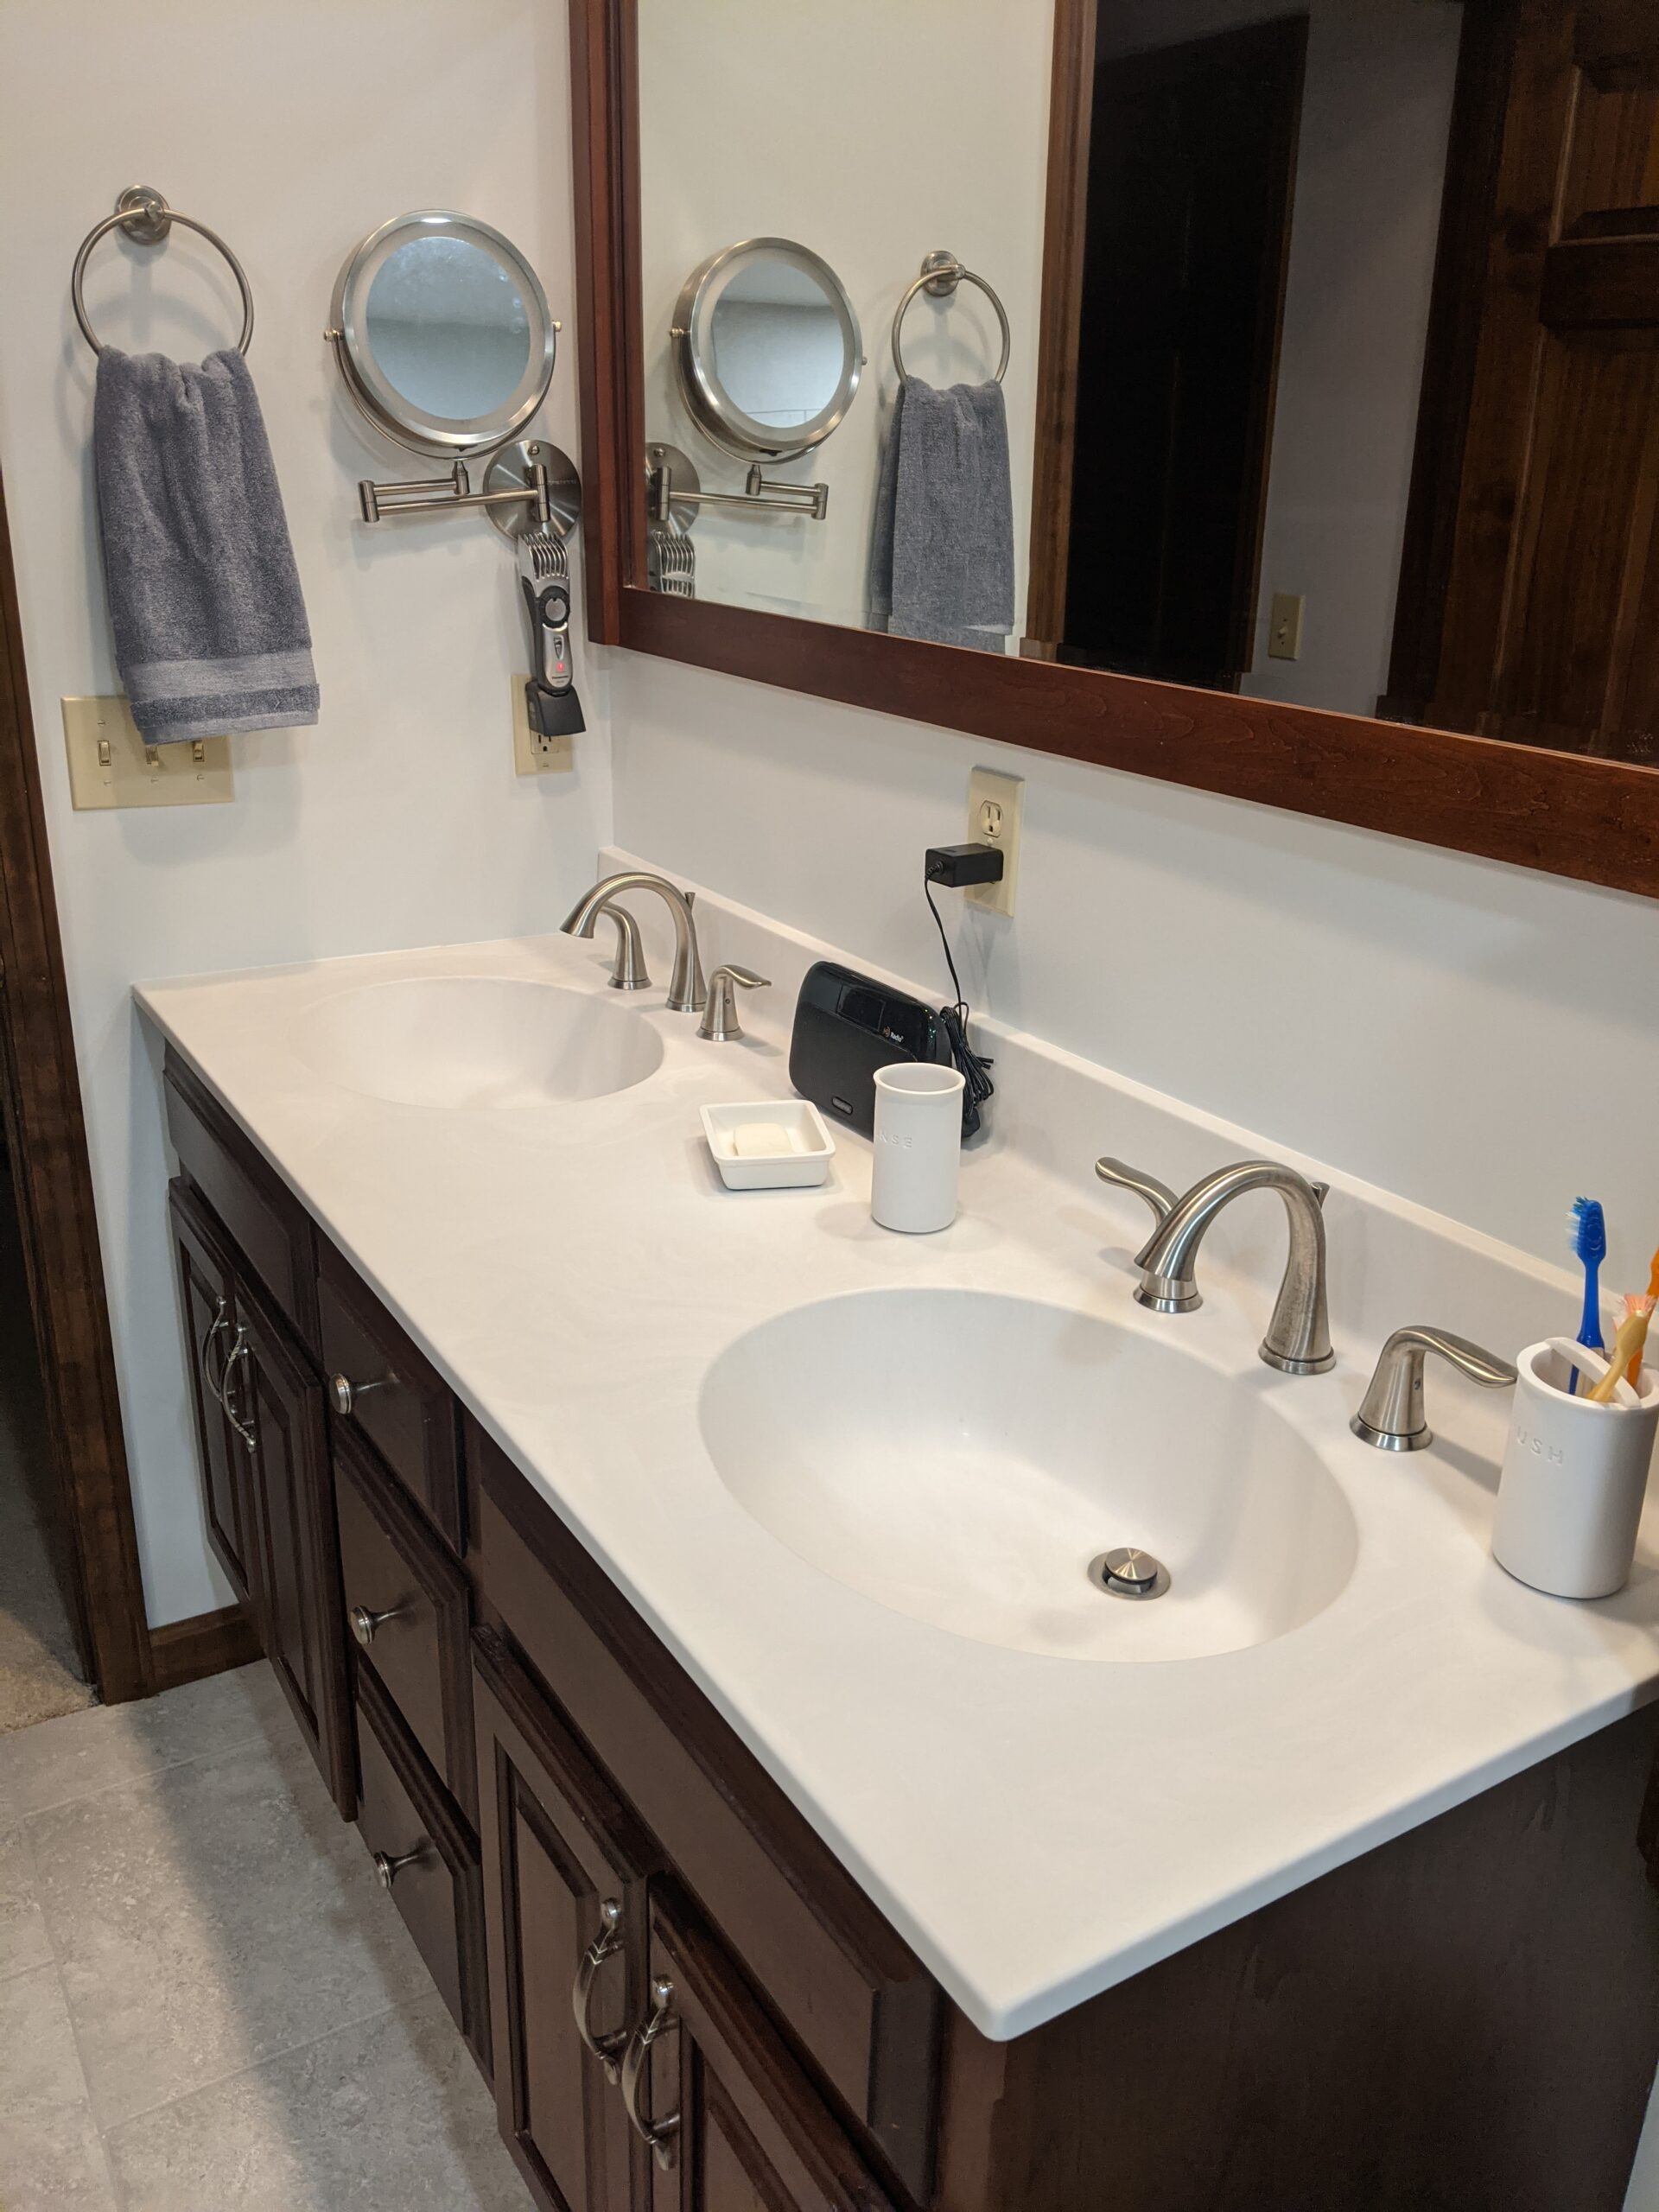 """New updated cultured marble double bowl vanity top with 8"""" widespread faucets in stainless steel"""